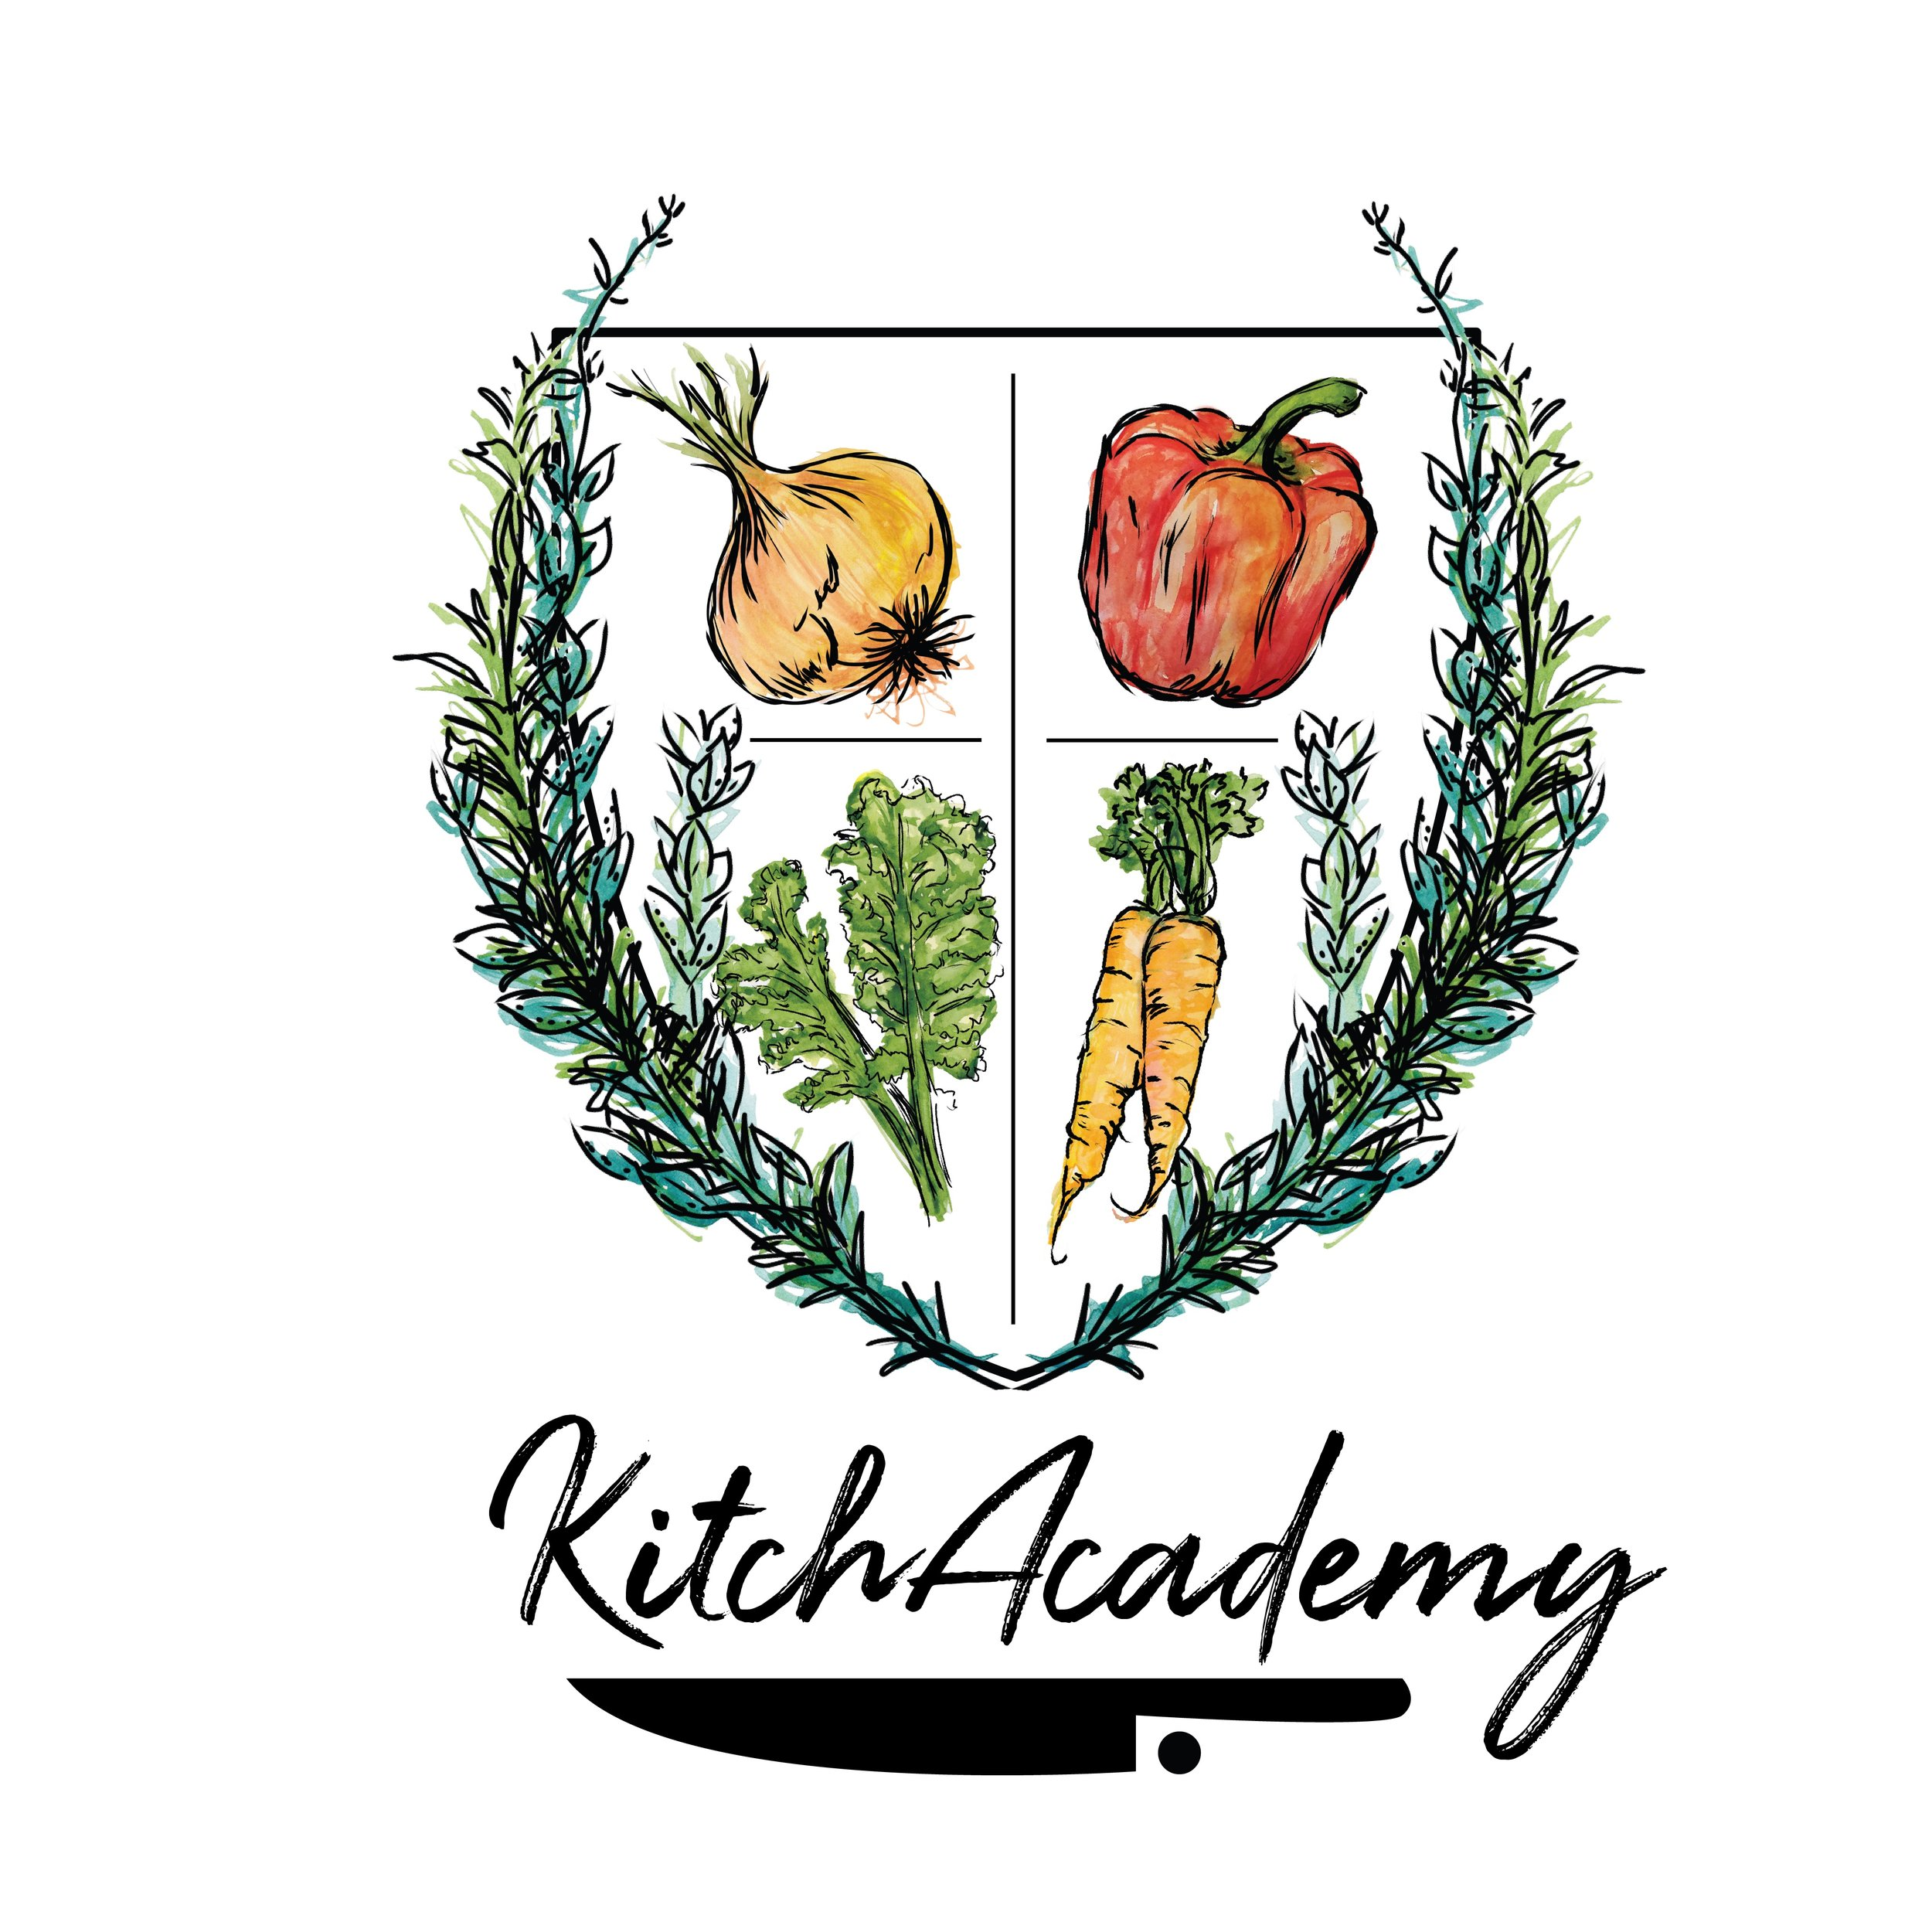 KitchAcademy